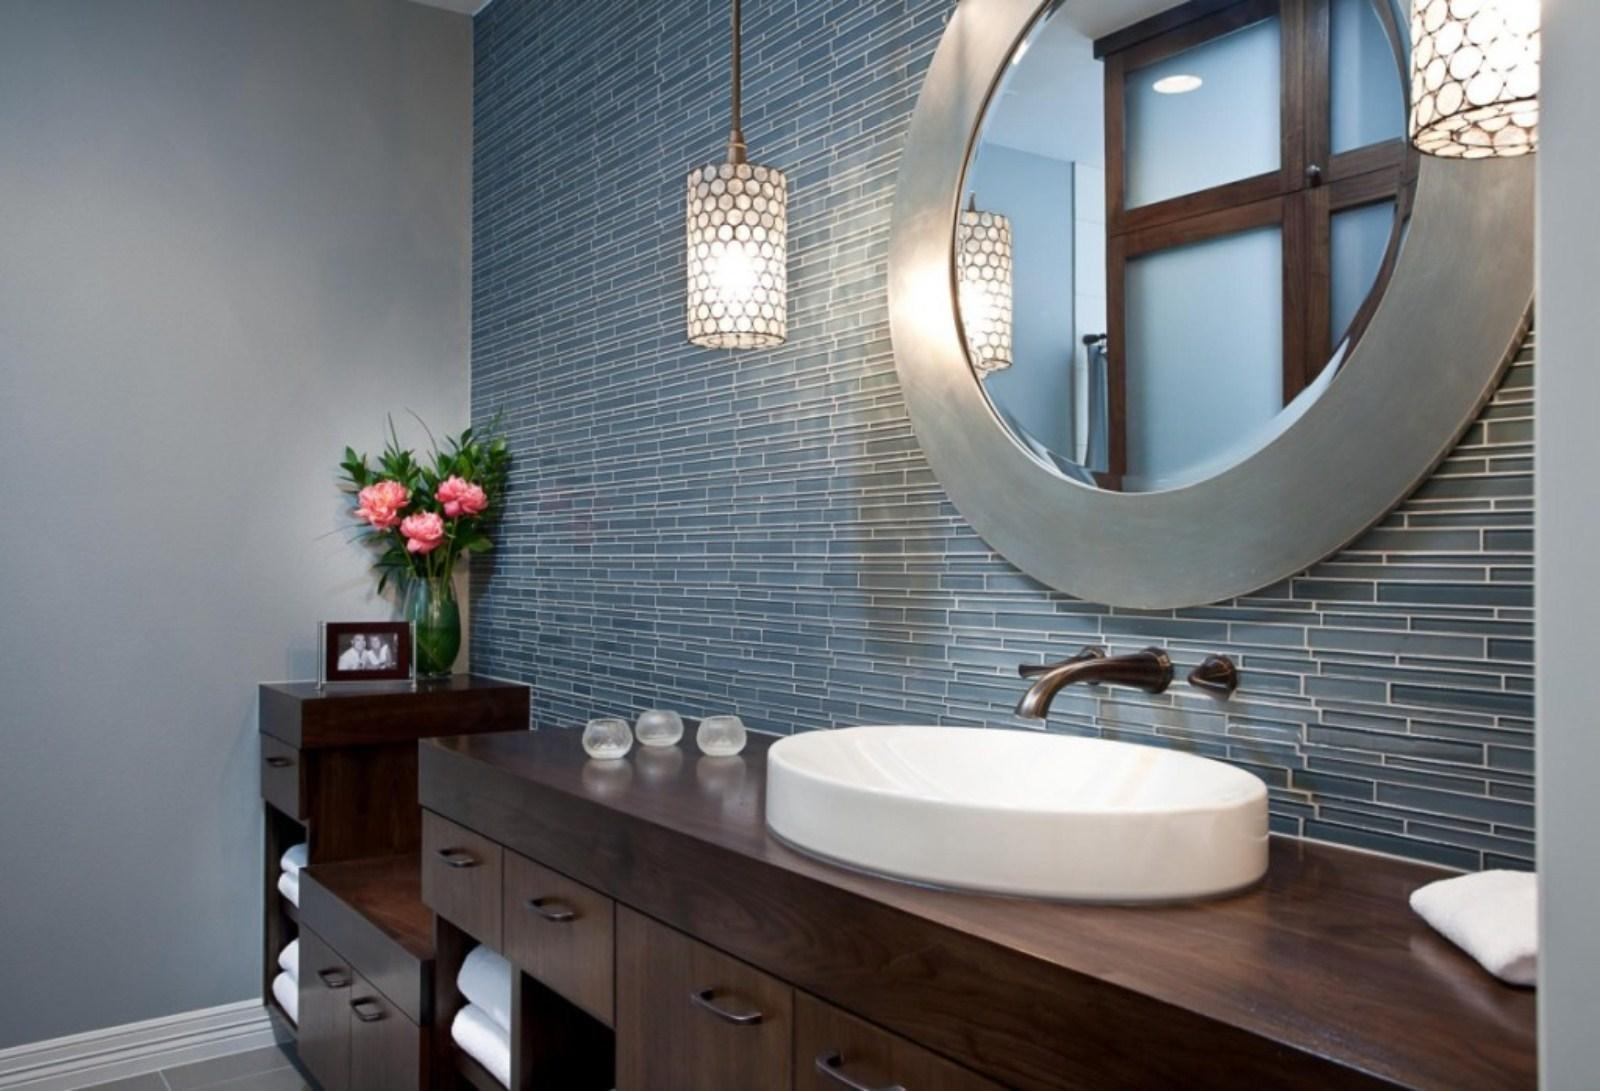 Bathroom Mirrors : Large Bathroom Wall Mirror Popular Home Design With Regard To Large Bathroom Wall Mirrors (Image 7 of 20)